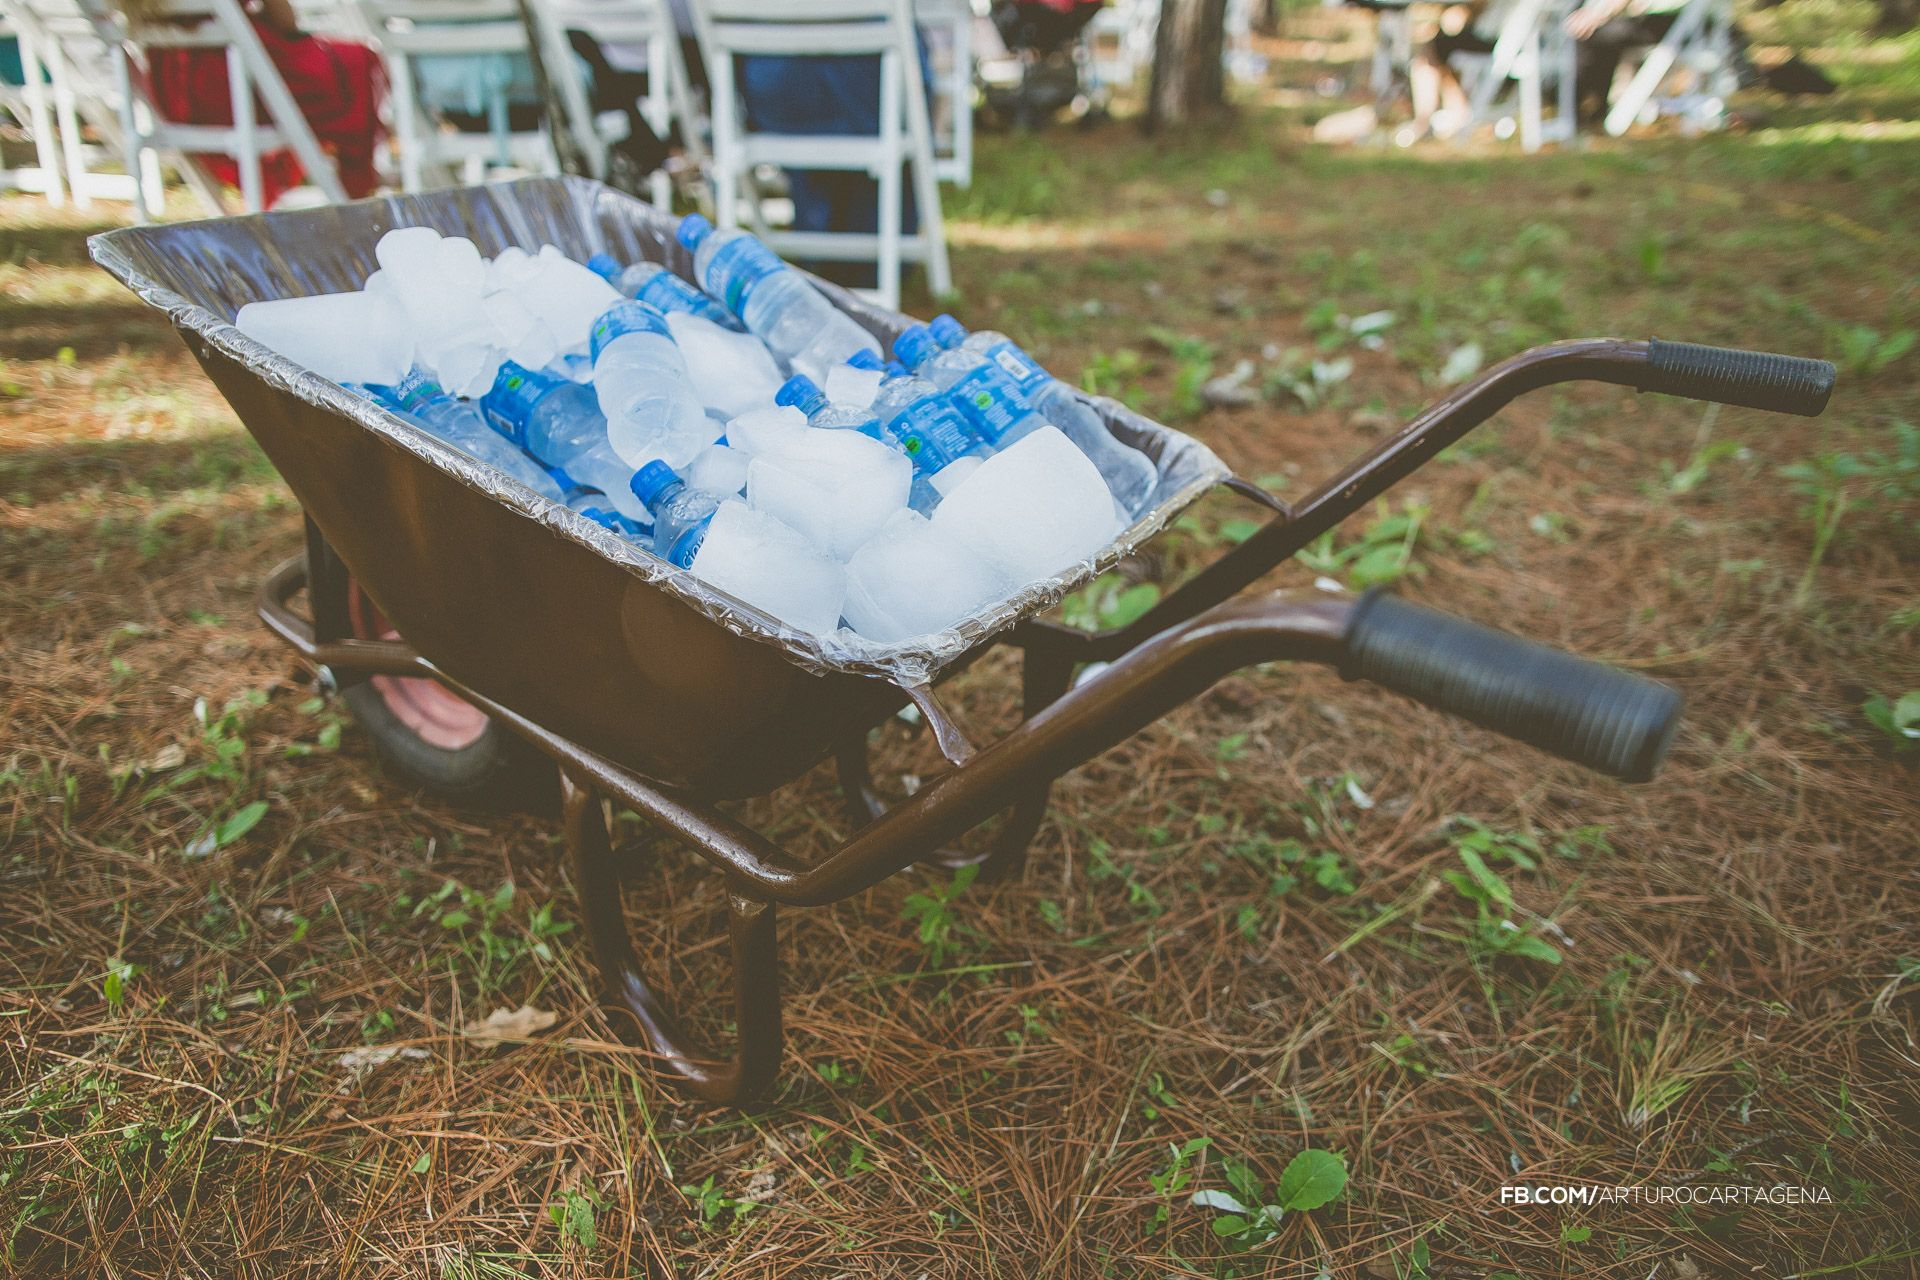 My wedding: fresh water and ice in a barrow. Outside ceremony | Photo by Arturo Cartagena